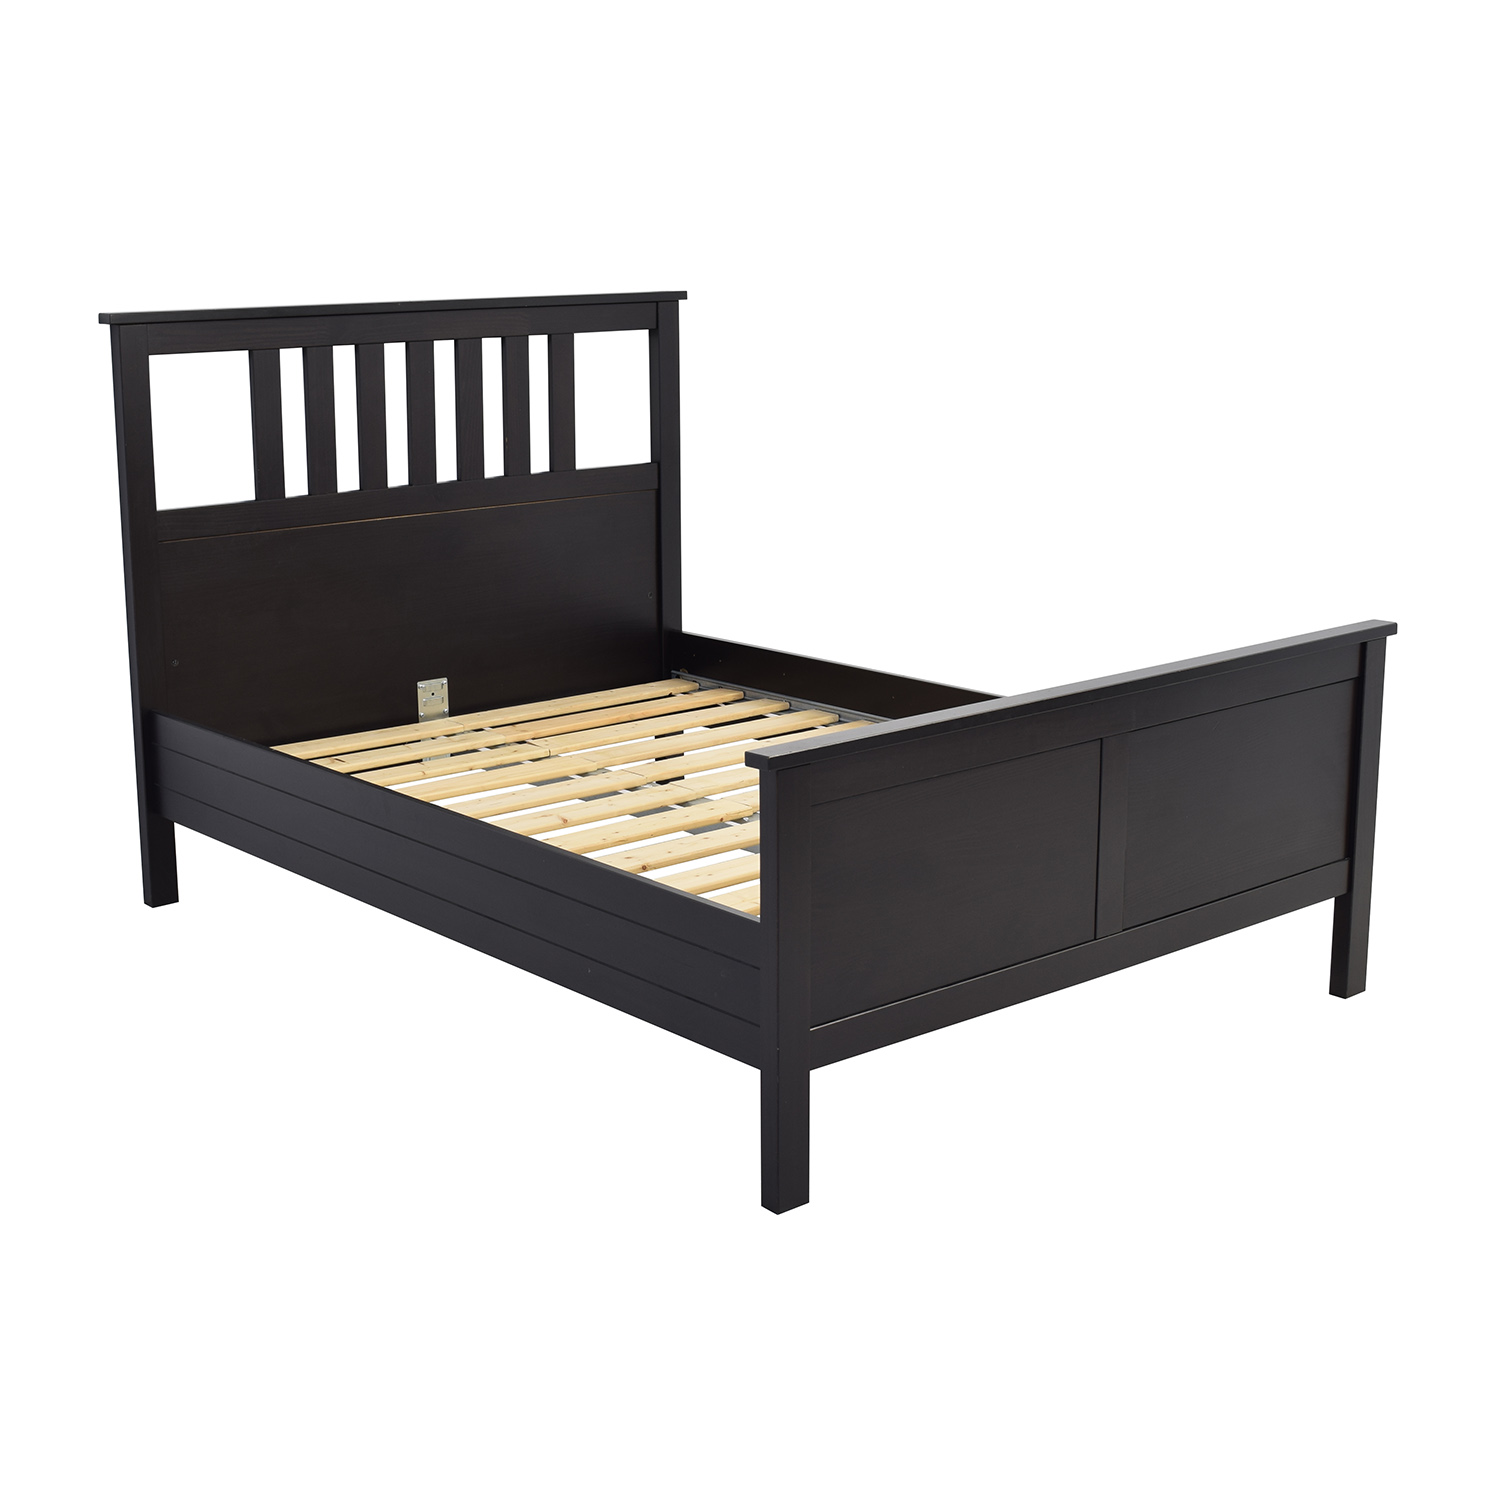 Ikea Dark Brown Wood Queen Bed Frame